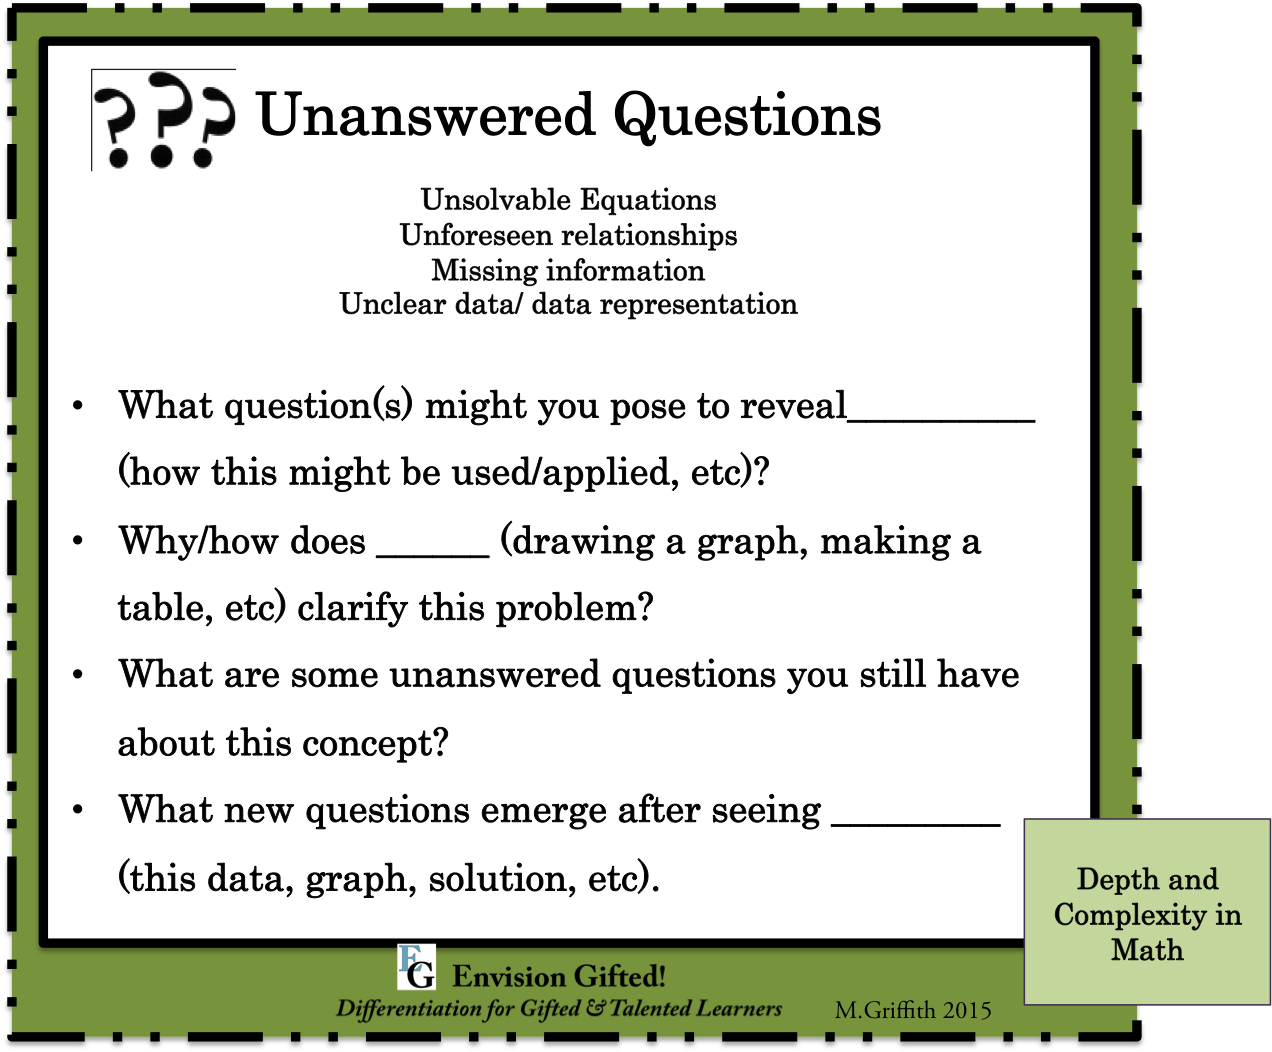 Envision Gifted. Depth and Complexity in Math Unanswered Questions